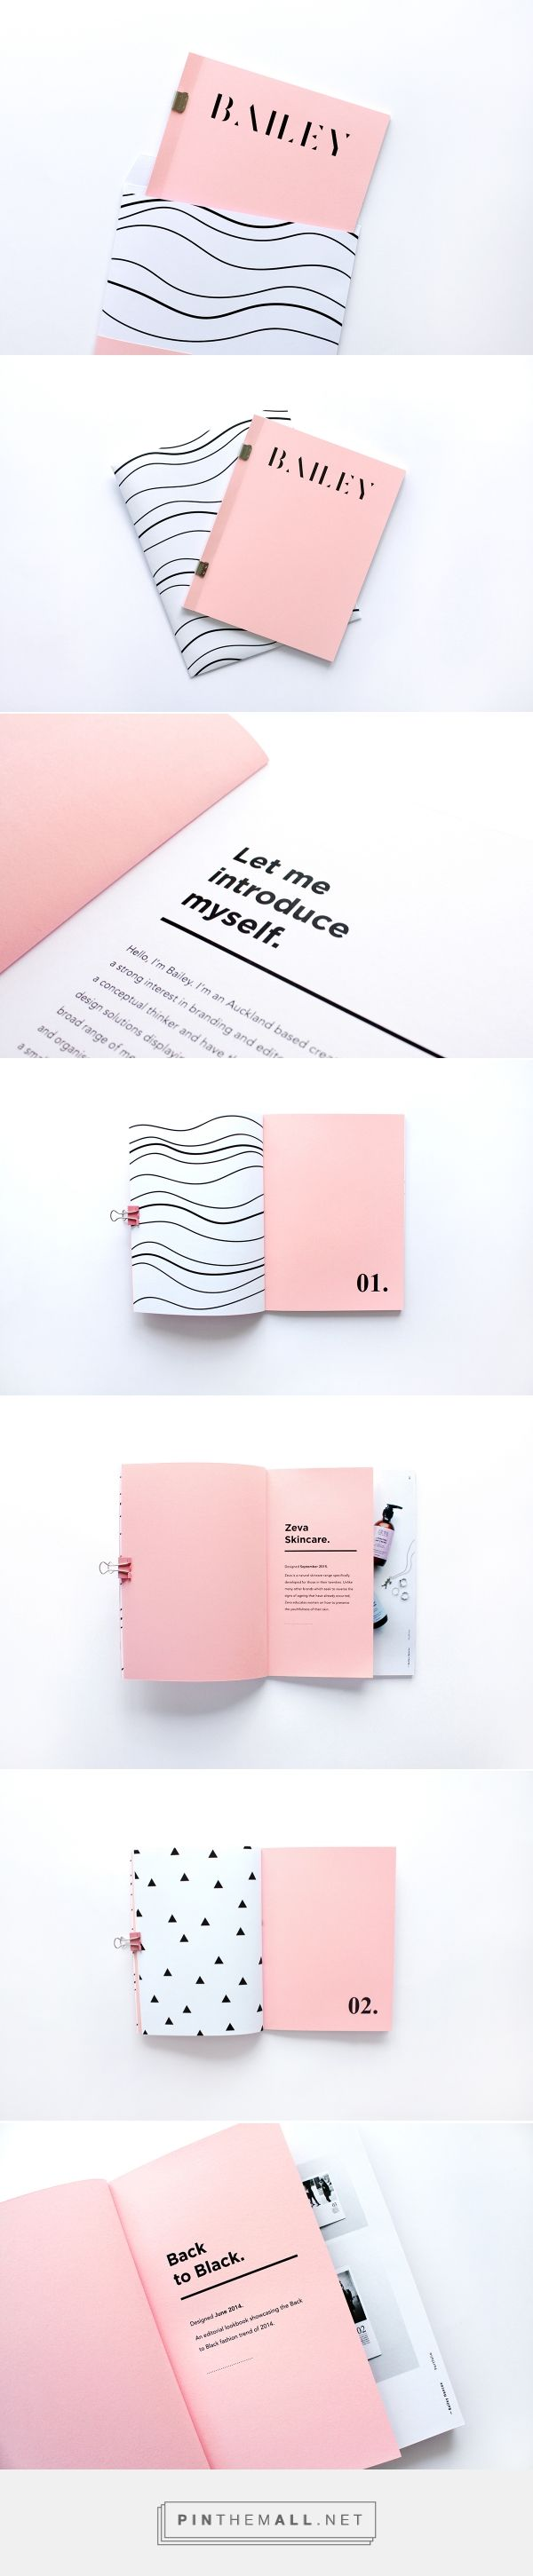 Design Portfolio on Behance... - a grouped images picture - Pin Them All